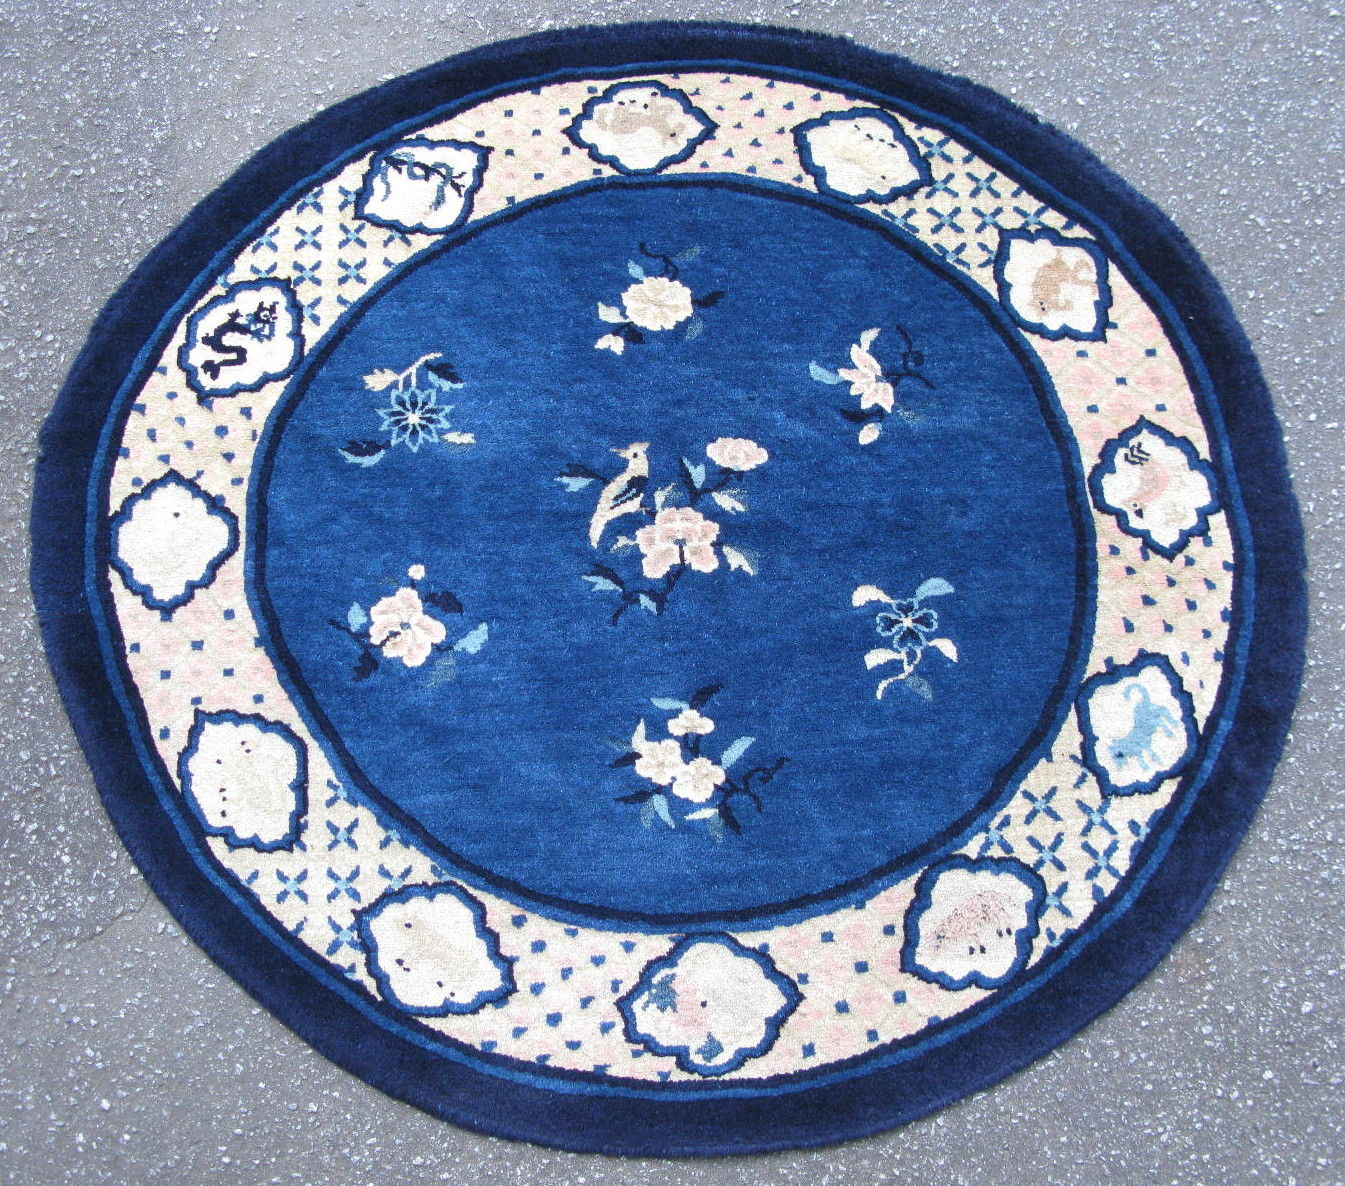 3'11 x 4'2 Round Hand-knotted Antique Chinese Art Deco Blue Peking Zodiac Rug 12980487 (1)